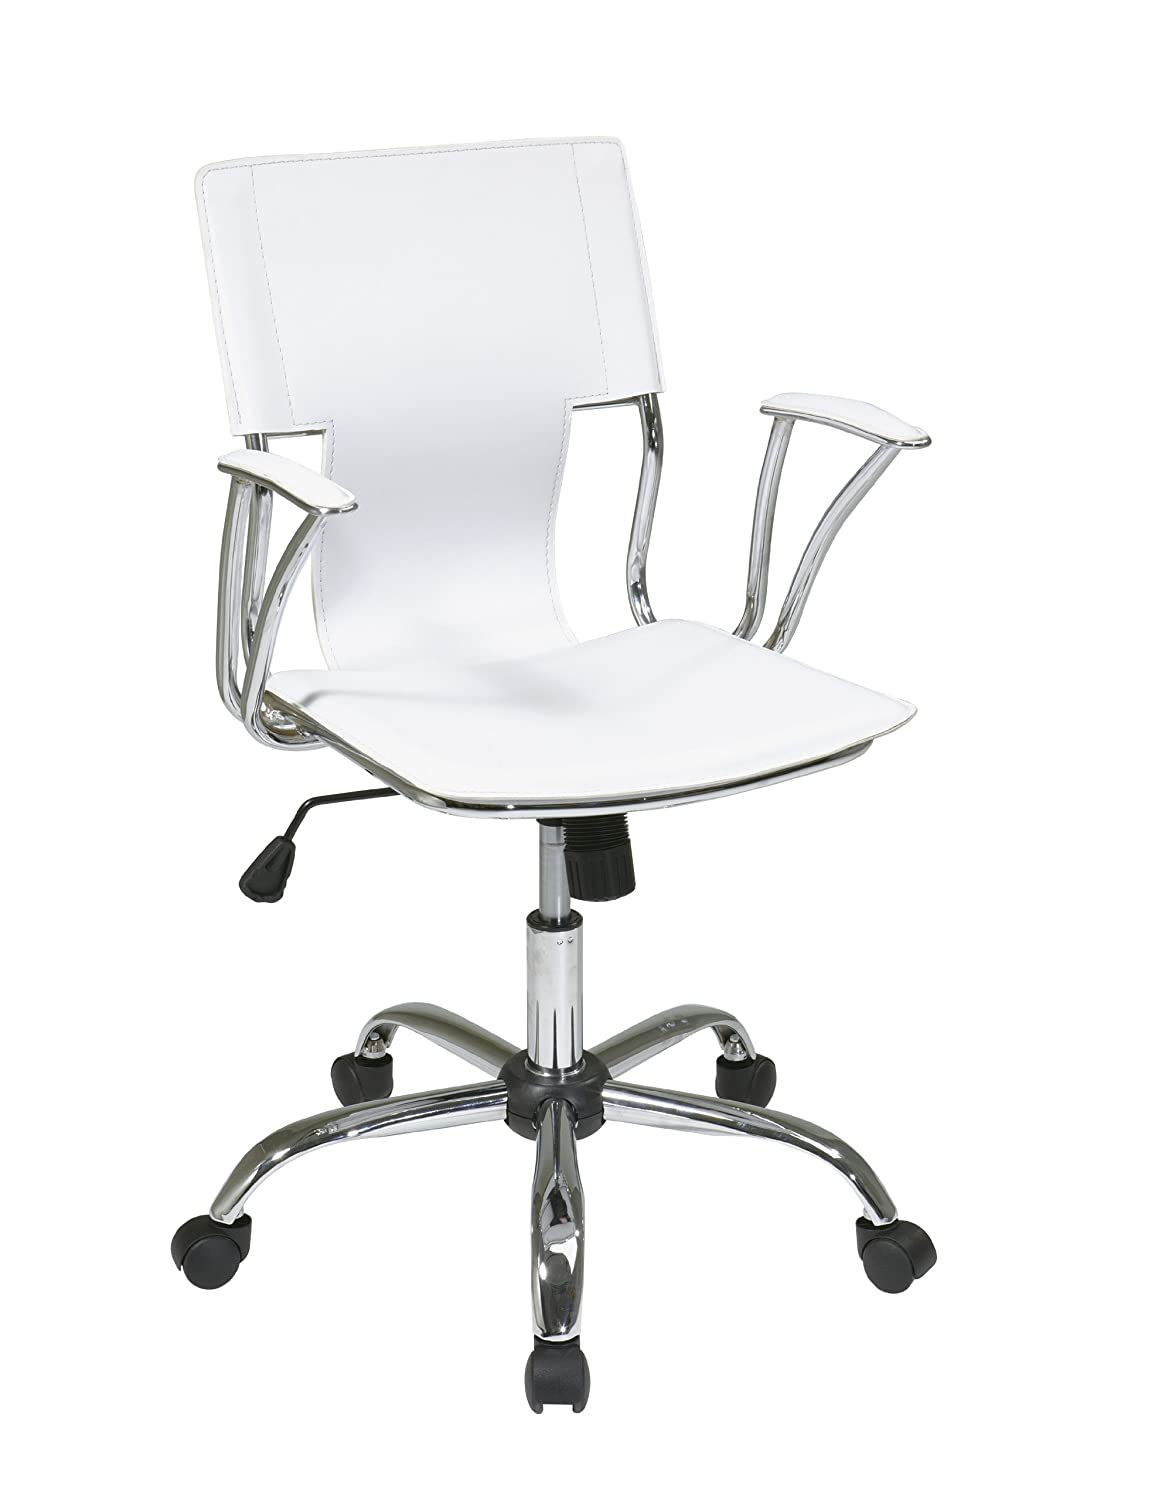 office chair white leather. Avenue Six Dorado Contour Seat And Back With Built-in Lumbar Support Adjustable Office Chair, White: Amazon.ca: Home \u0026 Kitchen Chair White Leather